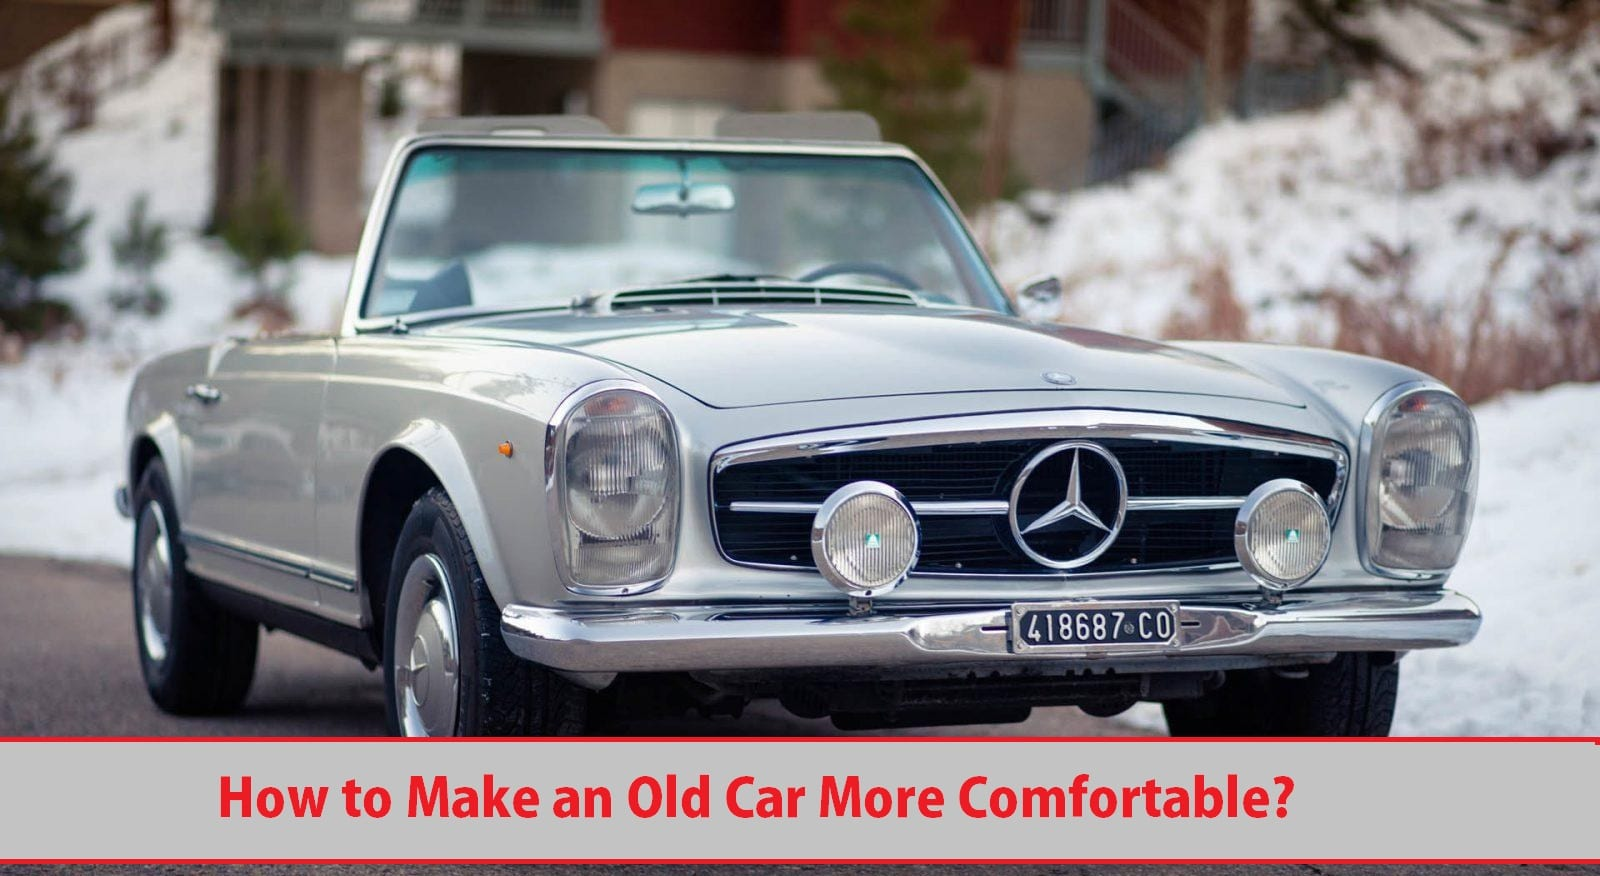 How to Make an Old Car More Comfortable?